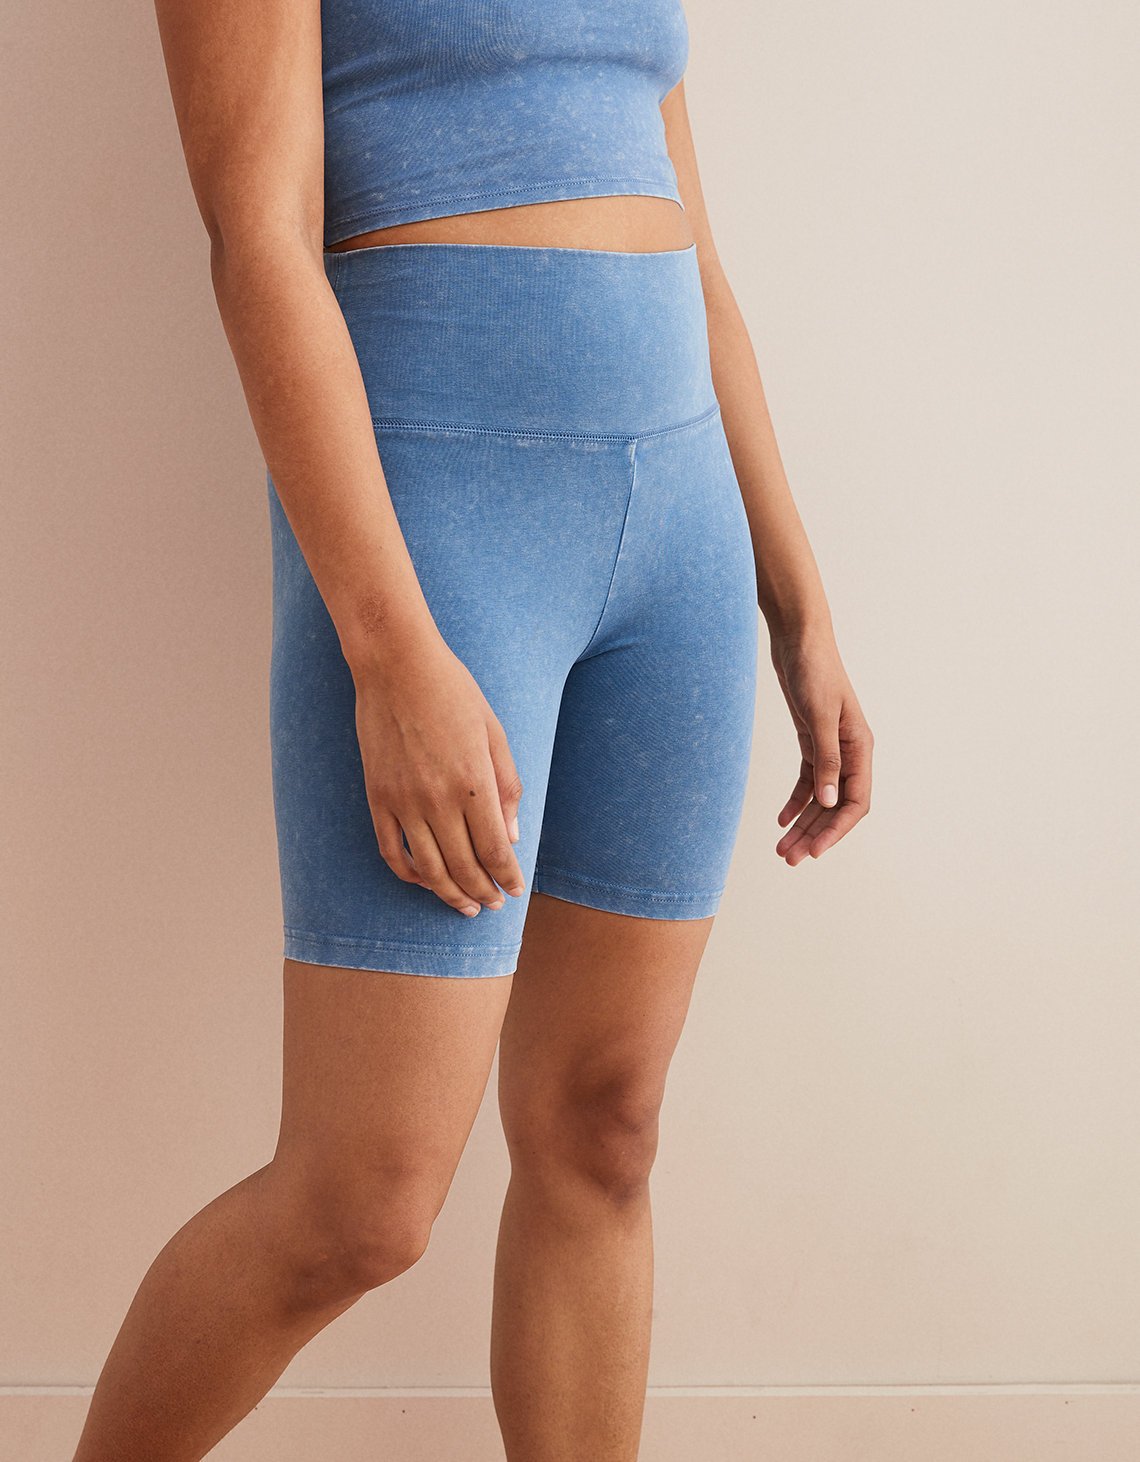 Aerie Chill High Waisted Bike Short